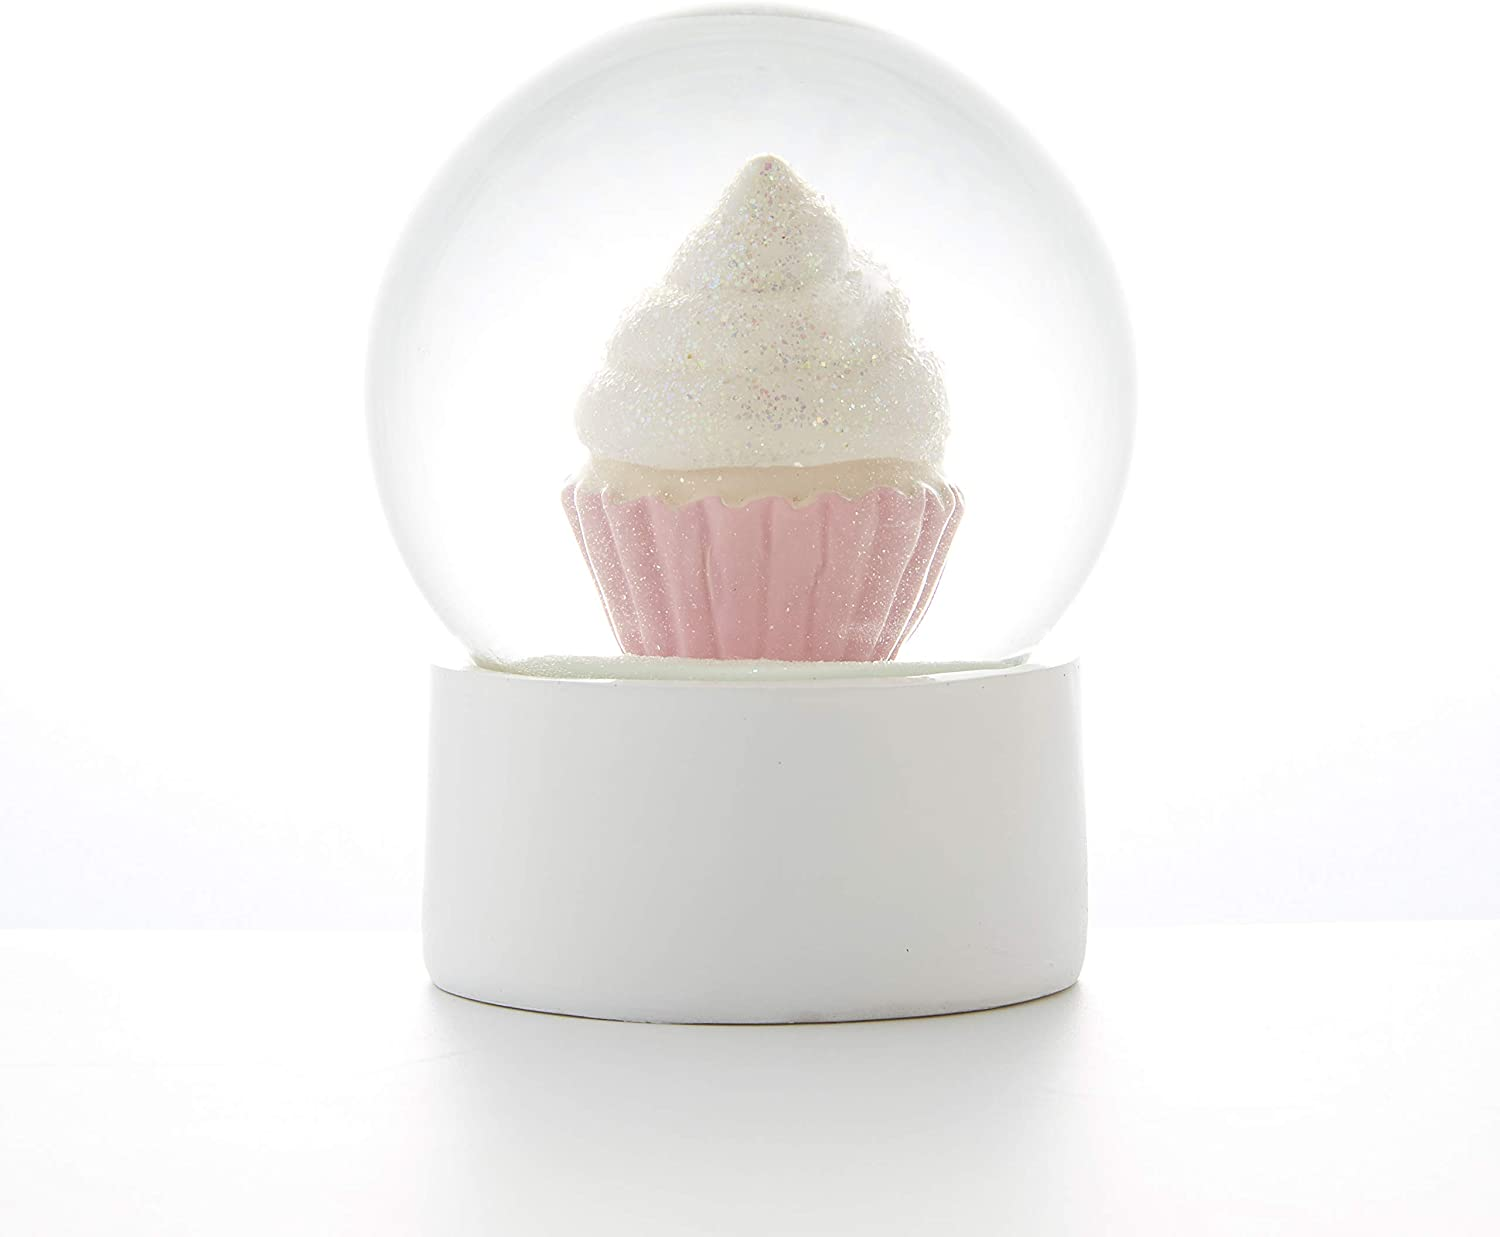 Sette Decor Pink Cupcake Snow Globe Water Globes 4 Inch Desk Decor Home Decoration for Girls Kids Child Granddaughters Babies Birthday Gift, 100 Mm Resin/Glass Snowglobe